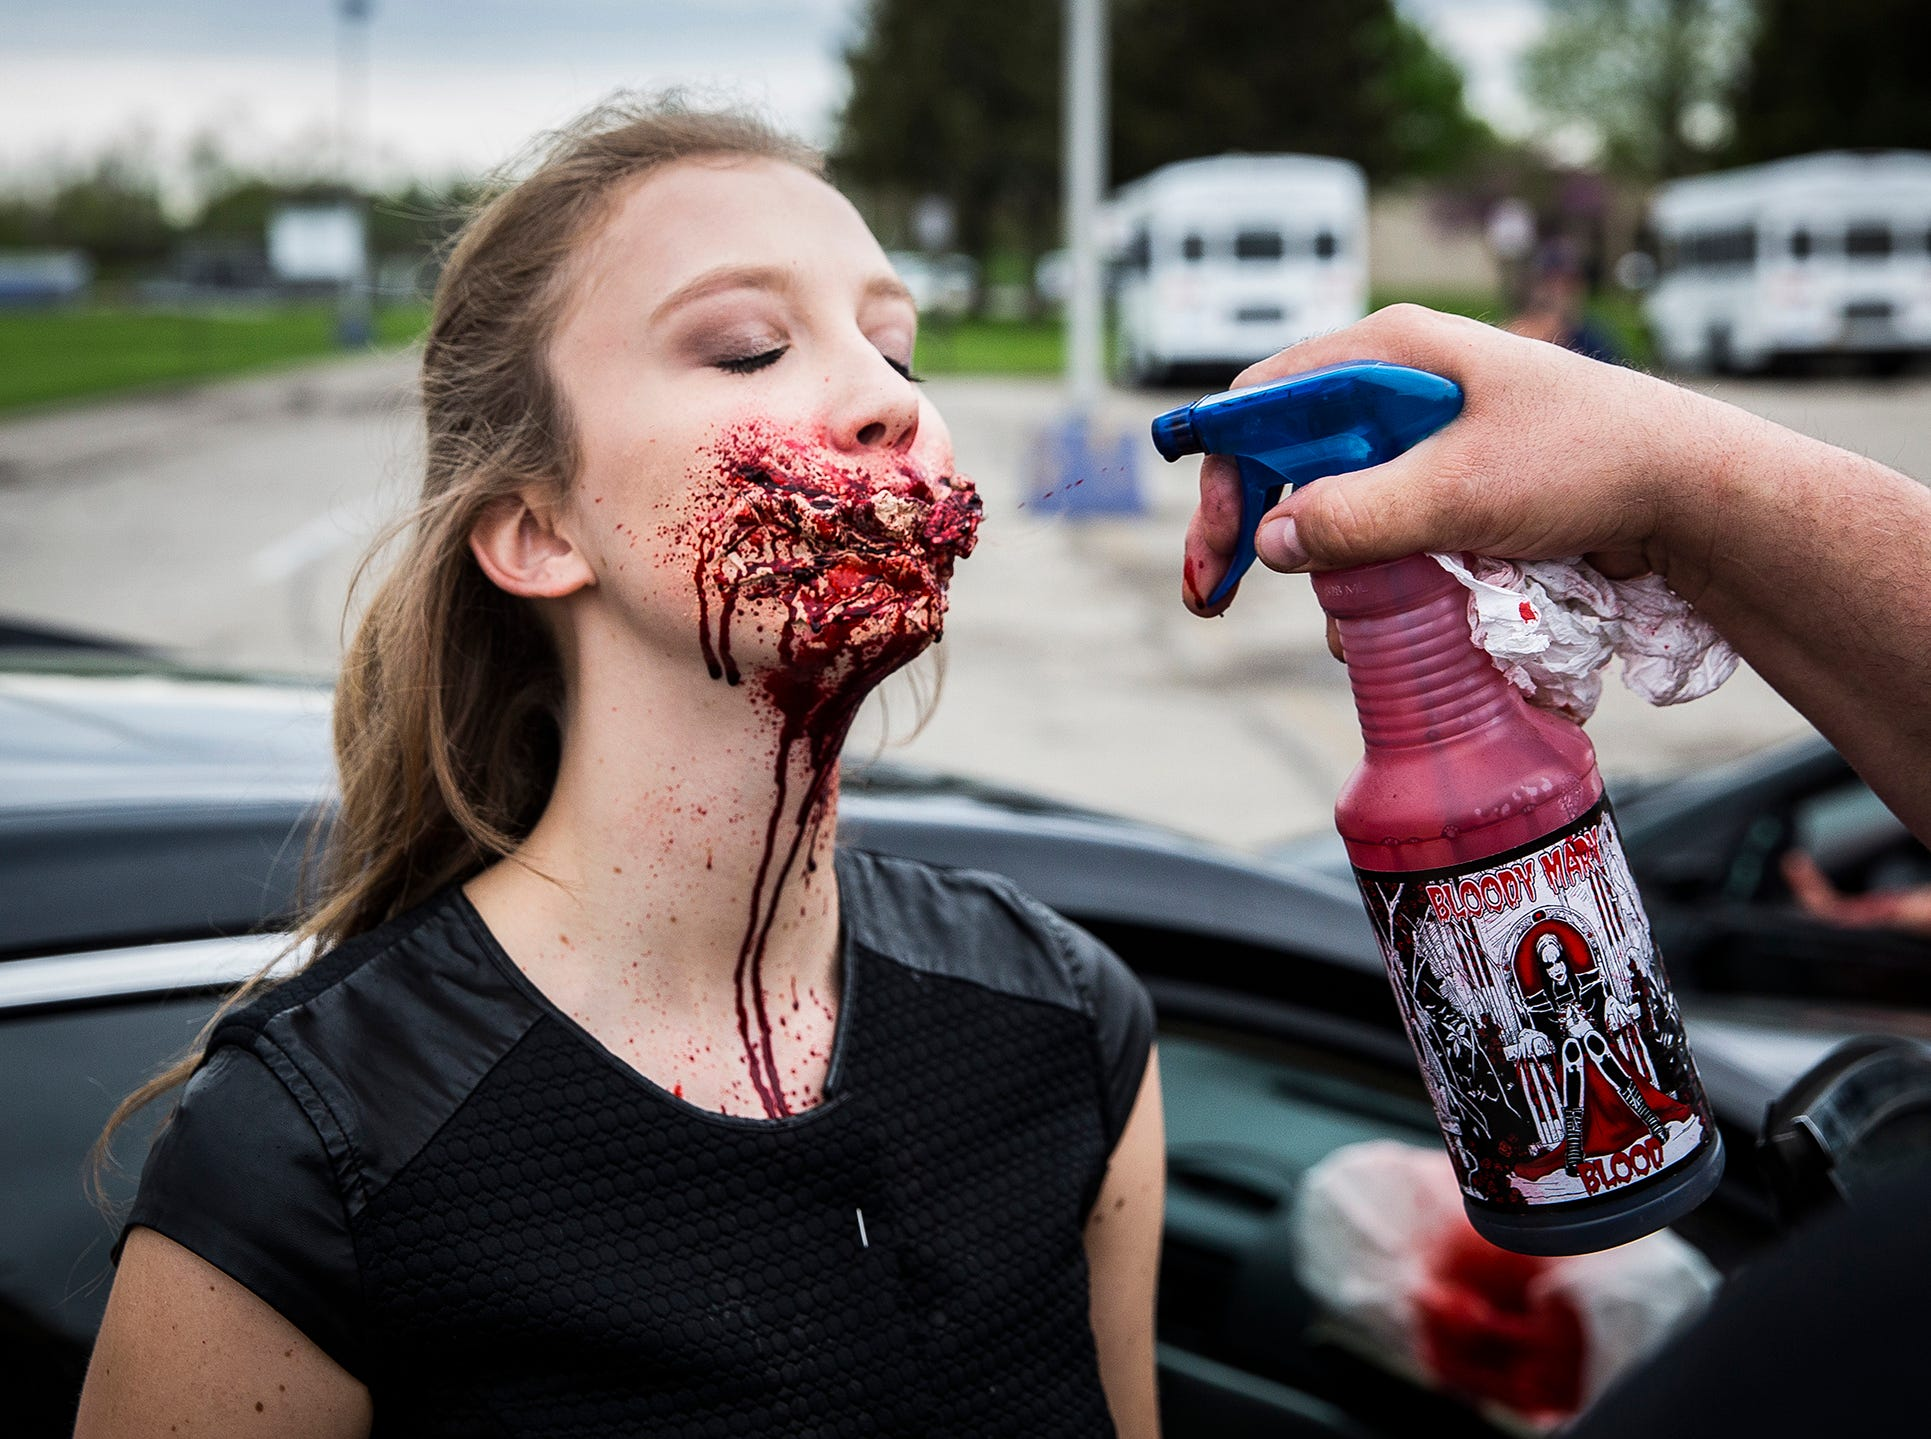 Claire Tinkle prepares to play the part of a crash victim during the 2019 Living Proof Crash Re-Enactment at Central Wednesday. The event seeks to raise awareness of the dangers of driving while intoxicated with re-enactments of crashes, court scenes and funerals. Makeup artist Brian Blair donated time and material for this year's Living Proof.